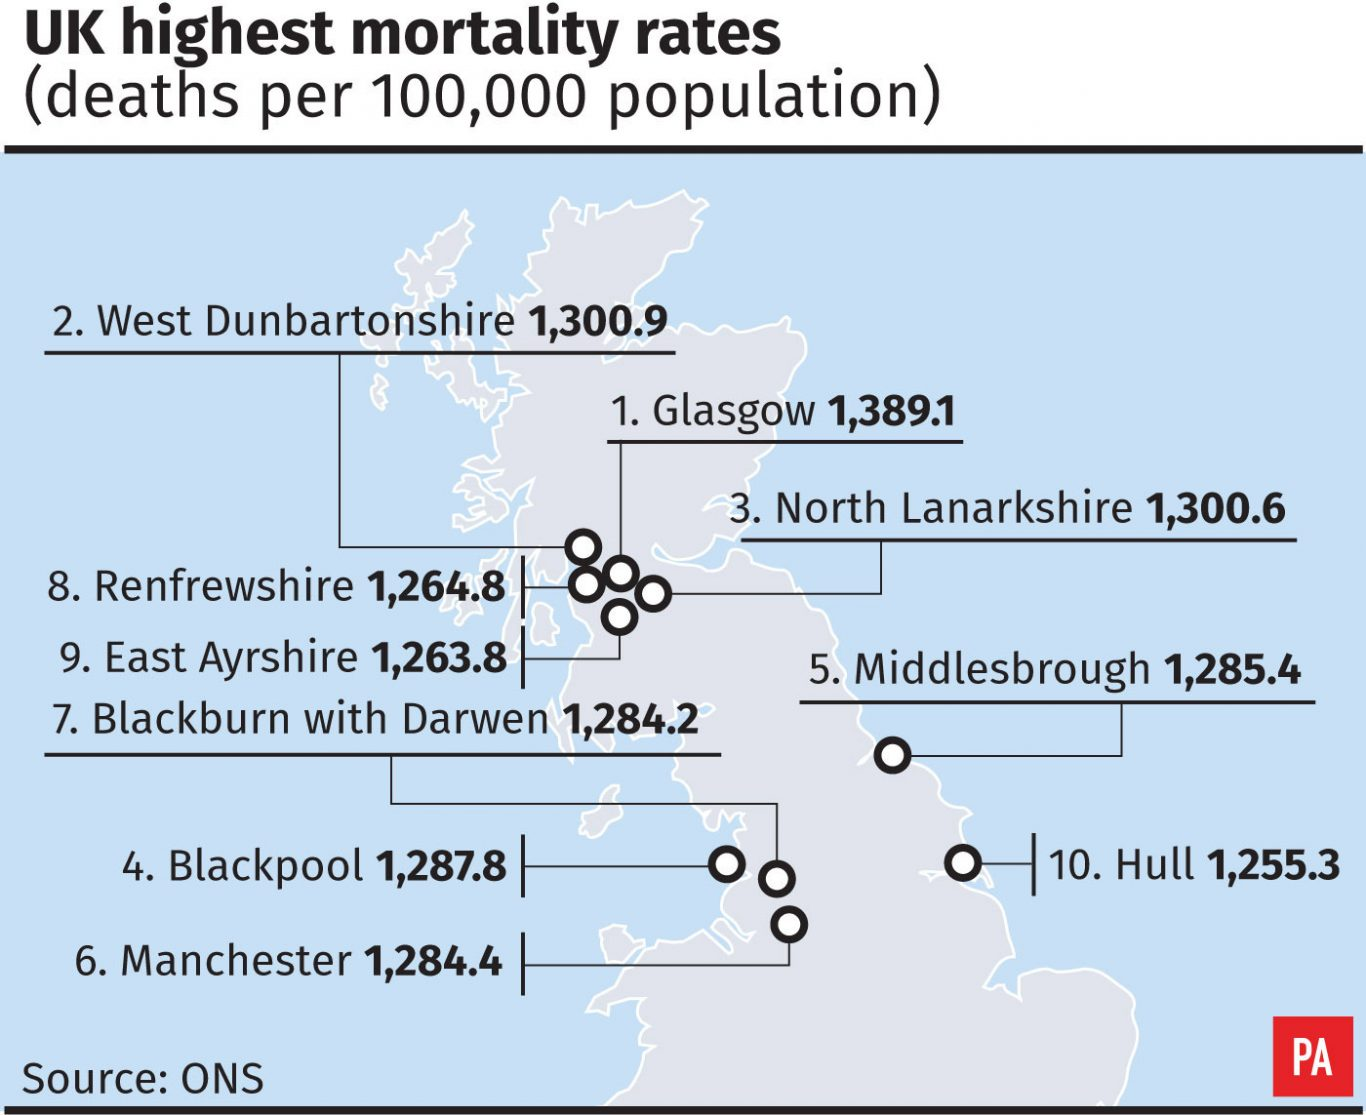 UK highest mortality rates